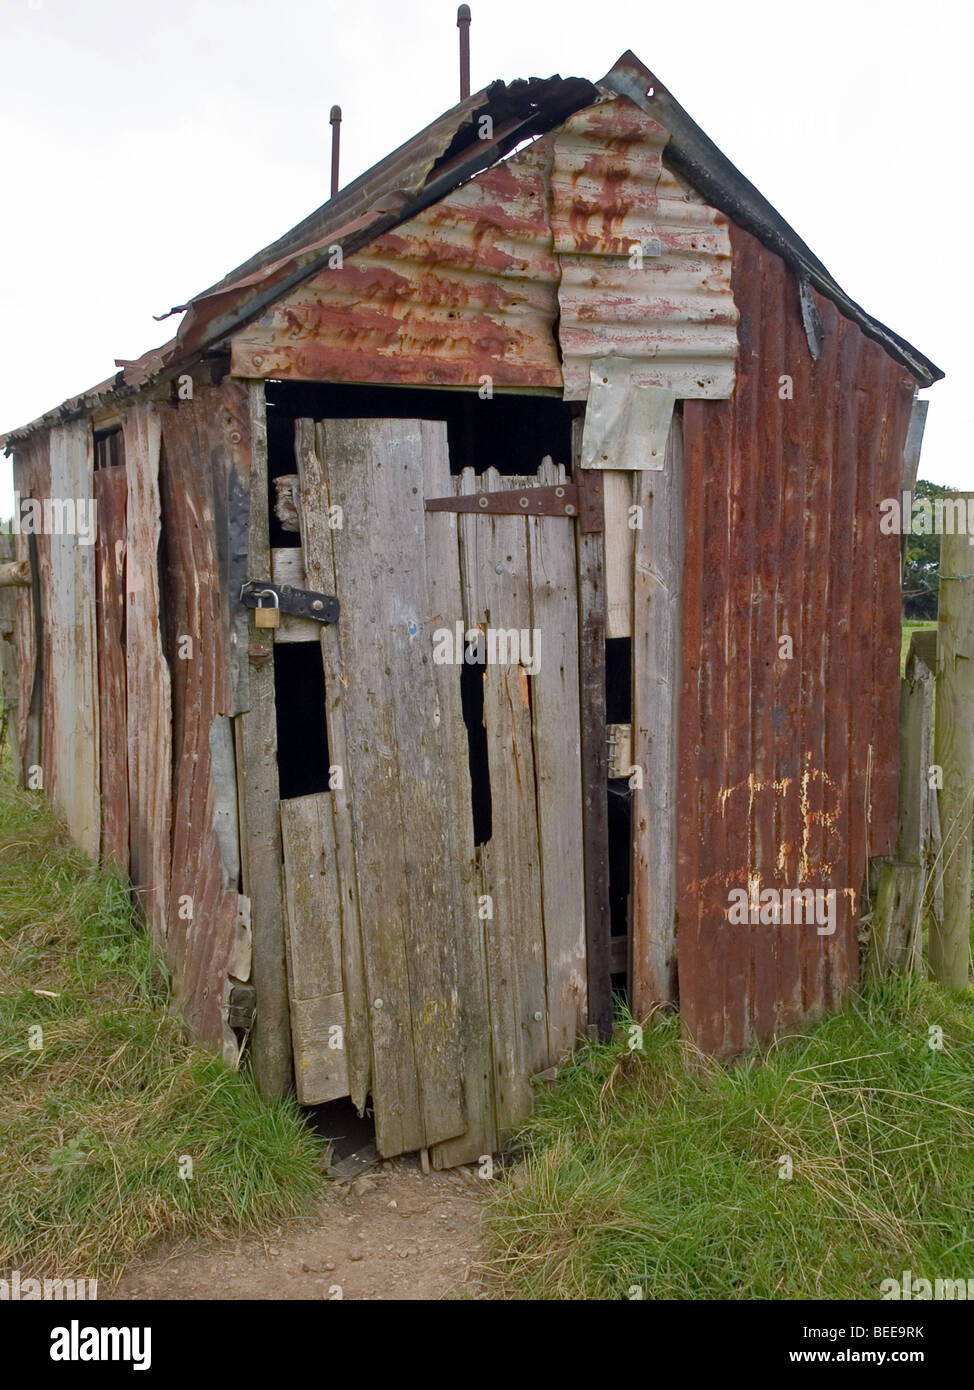 Old Tin Shed Stock Photo Royalty Free Image 26130599 Alamy